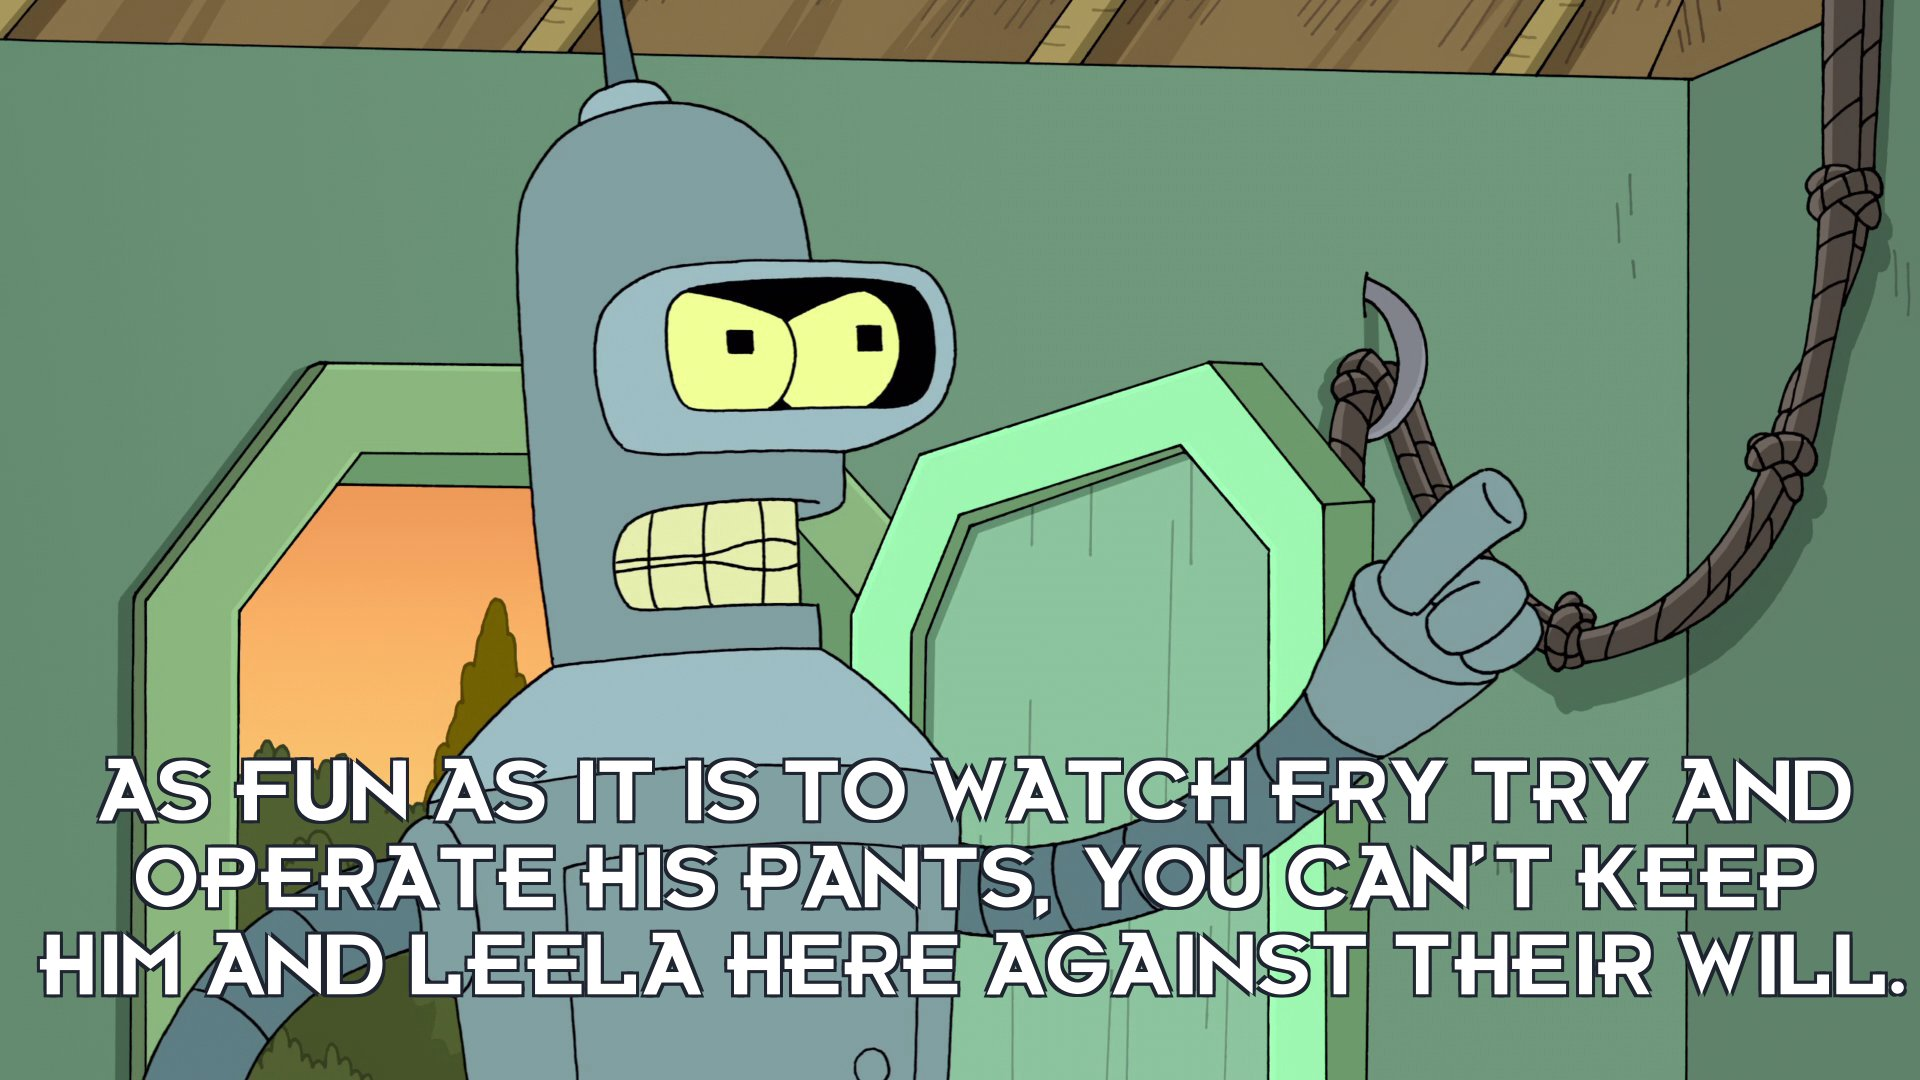 Bender Bending Rodriguez: As fun as it is to watch Fry try and operate his pants, you can't keep him and Leela here against their will.